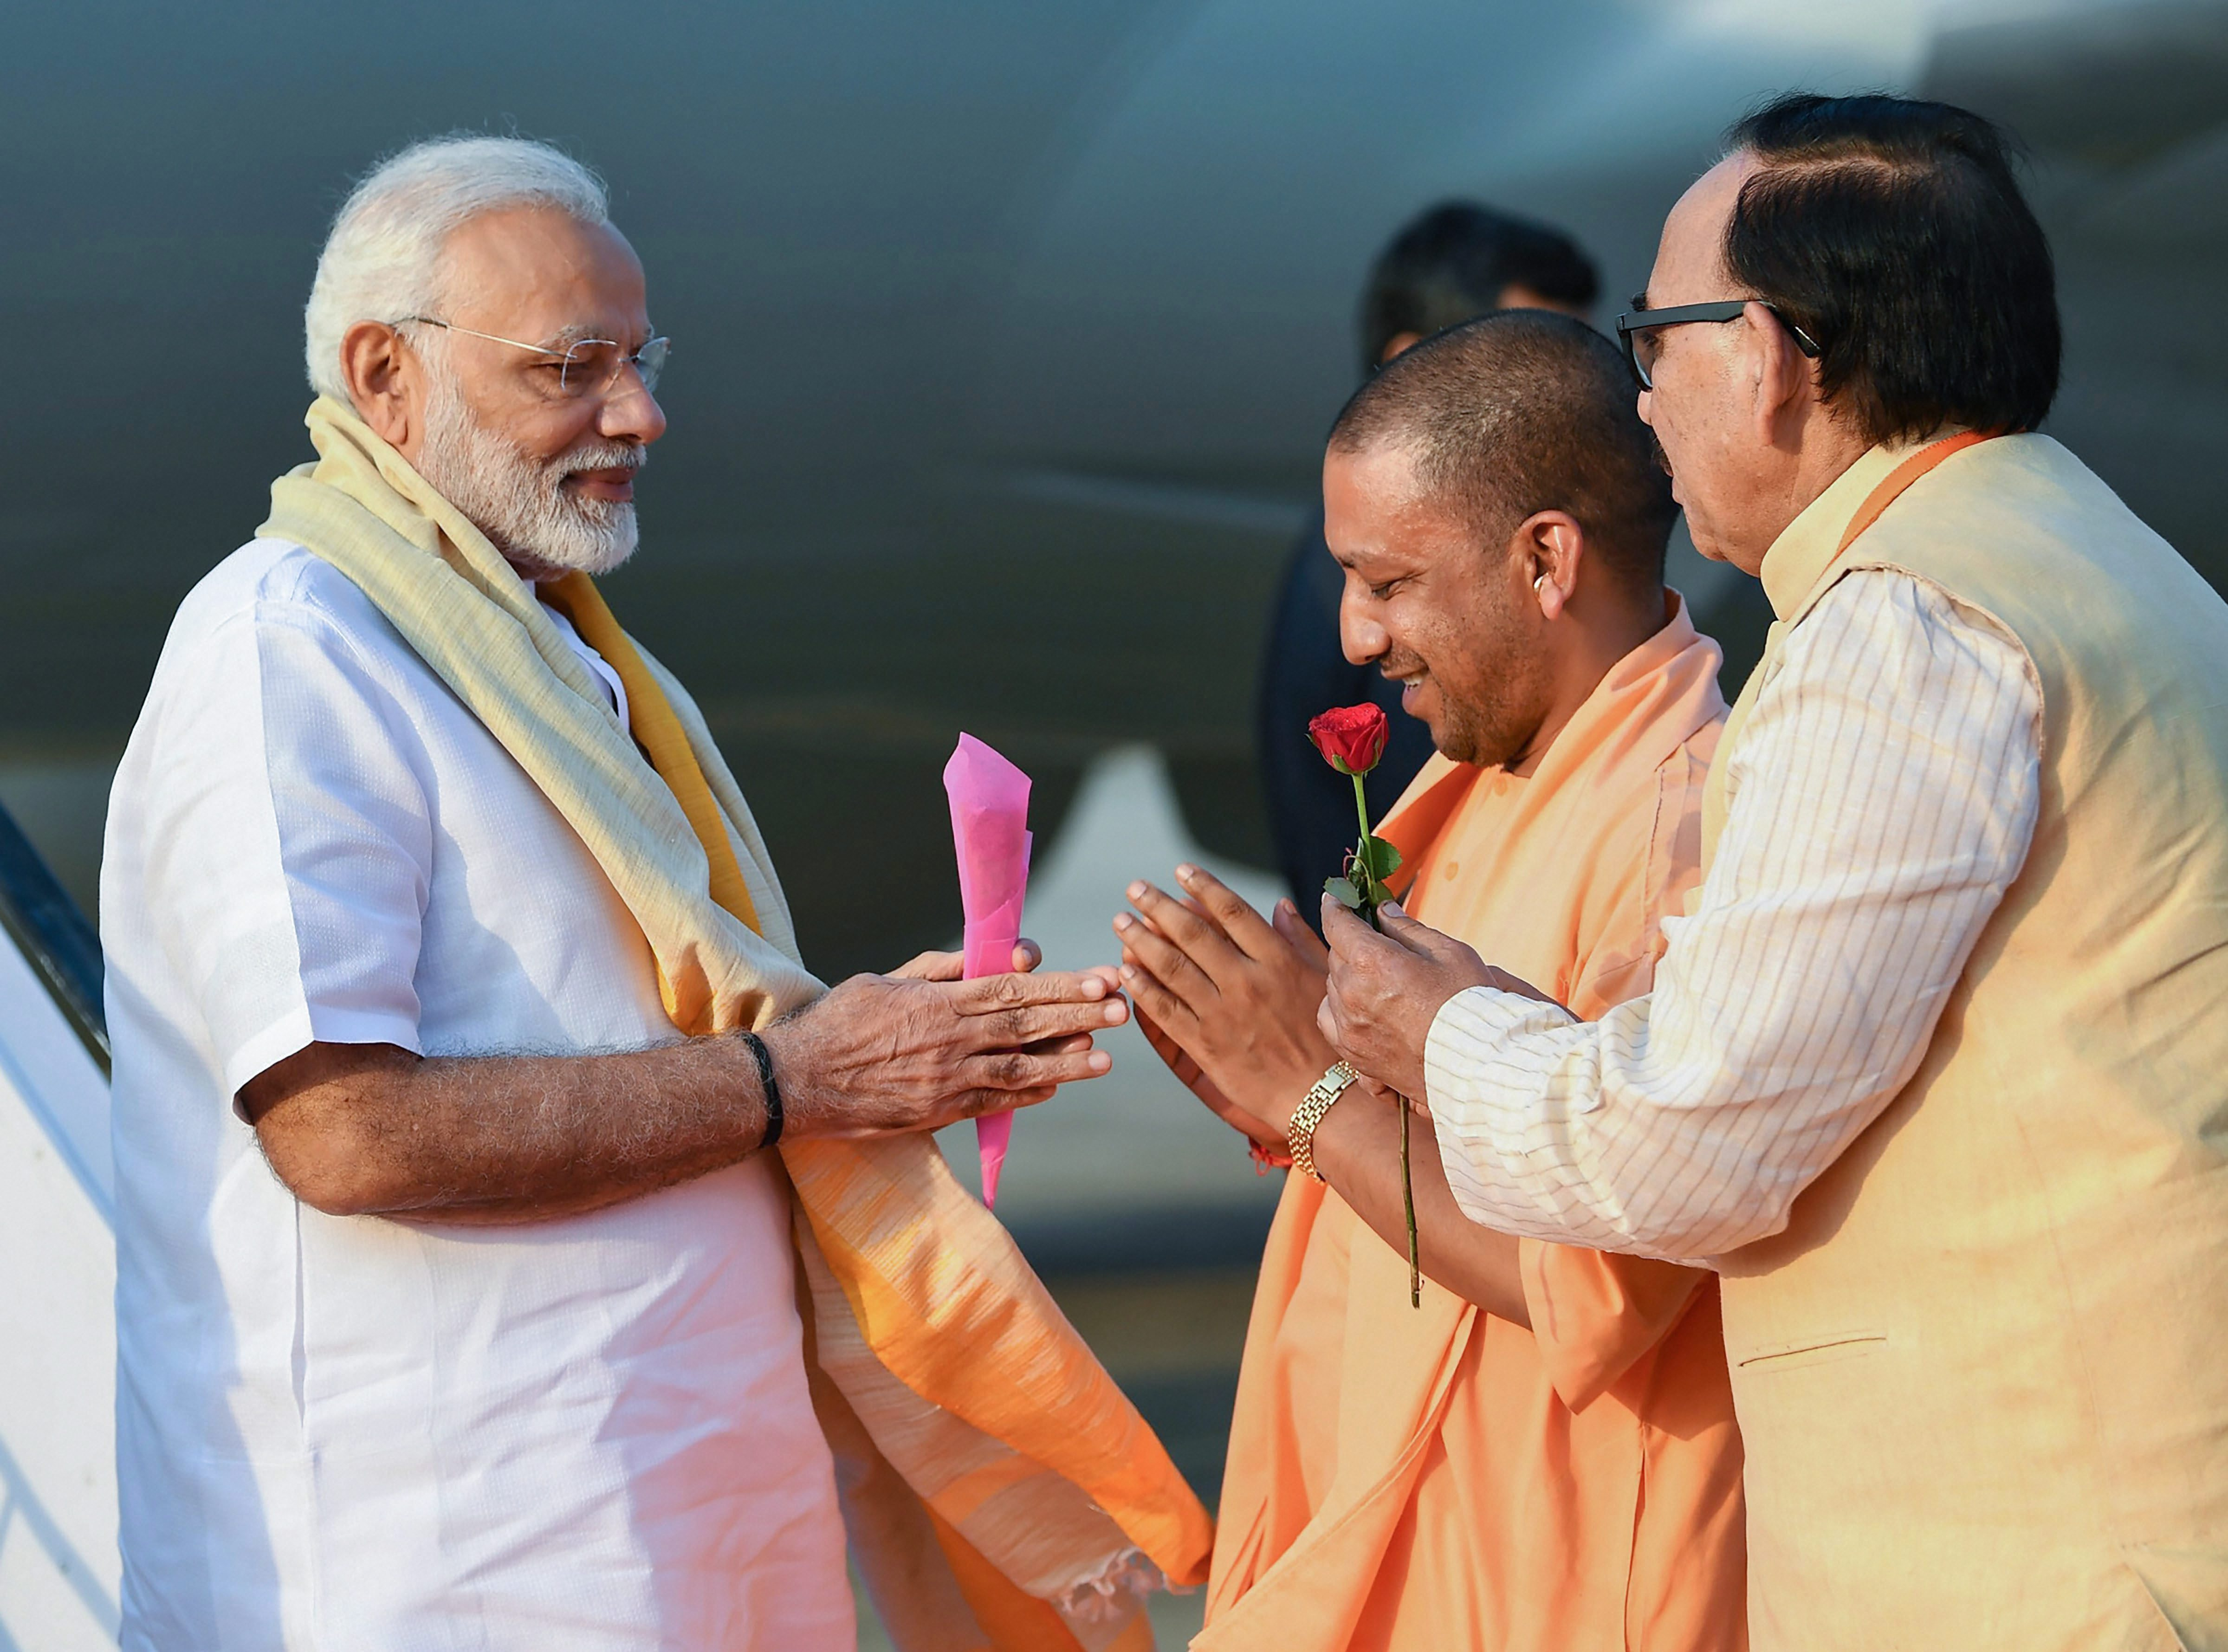 rime Minister Narendra Modi being welcomed by the Chief Minister of Uttar Pradesh Yogi Adityanath, on his arrival in Varanasi - PTI